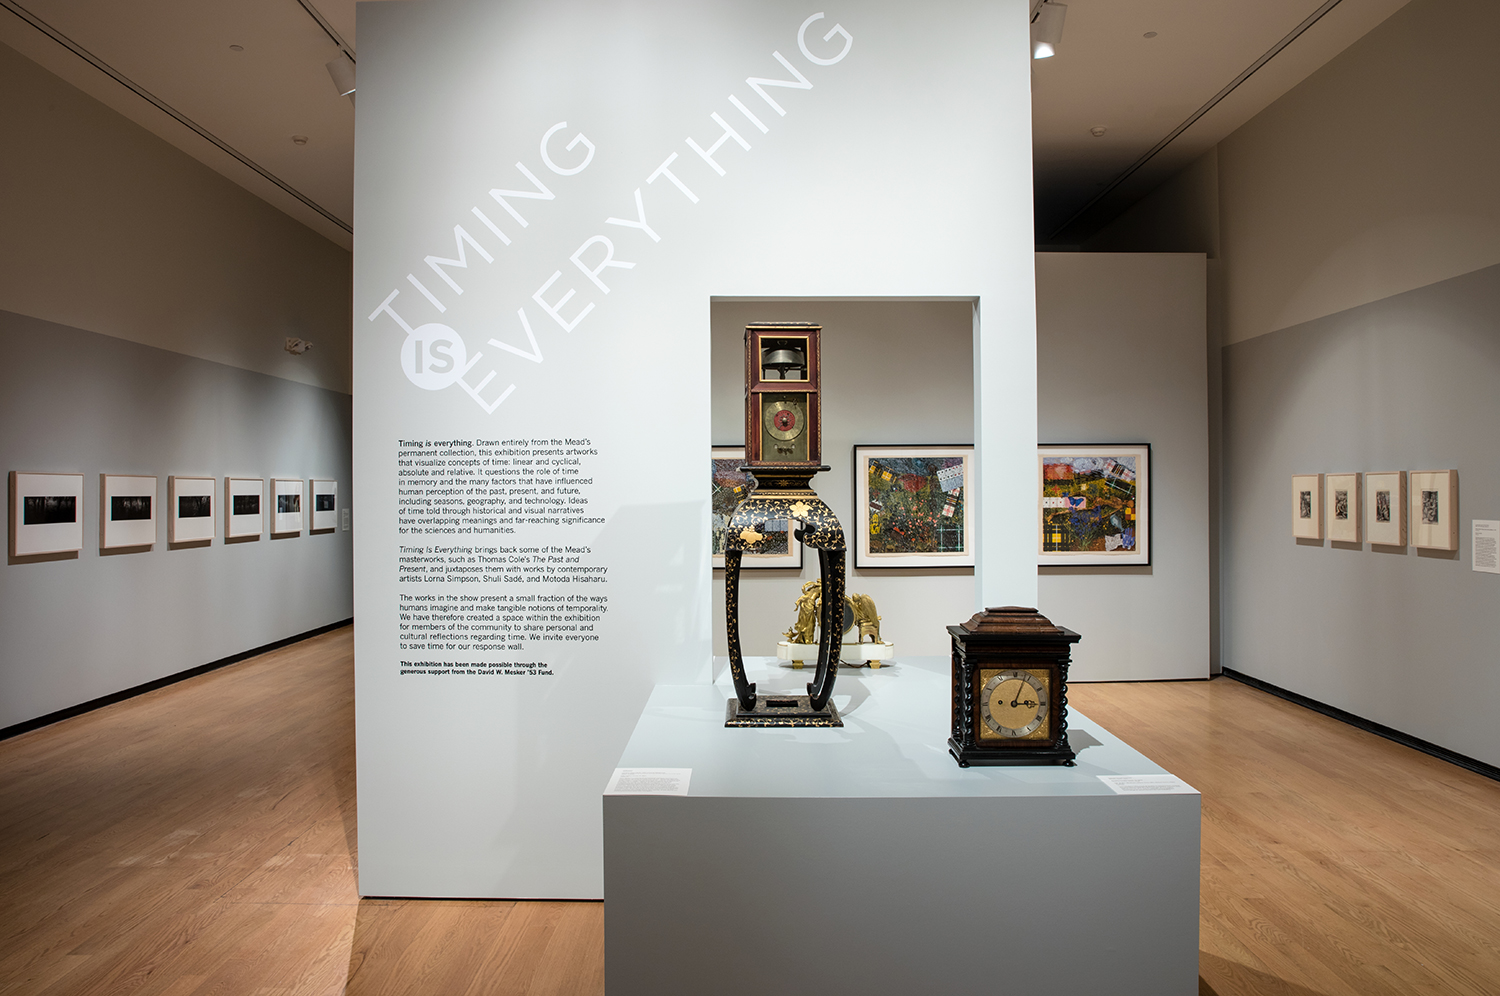 Installation view of the Timing is Everything exhibit at Mead Art Museum